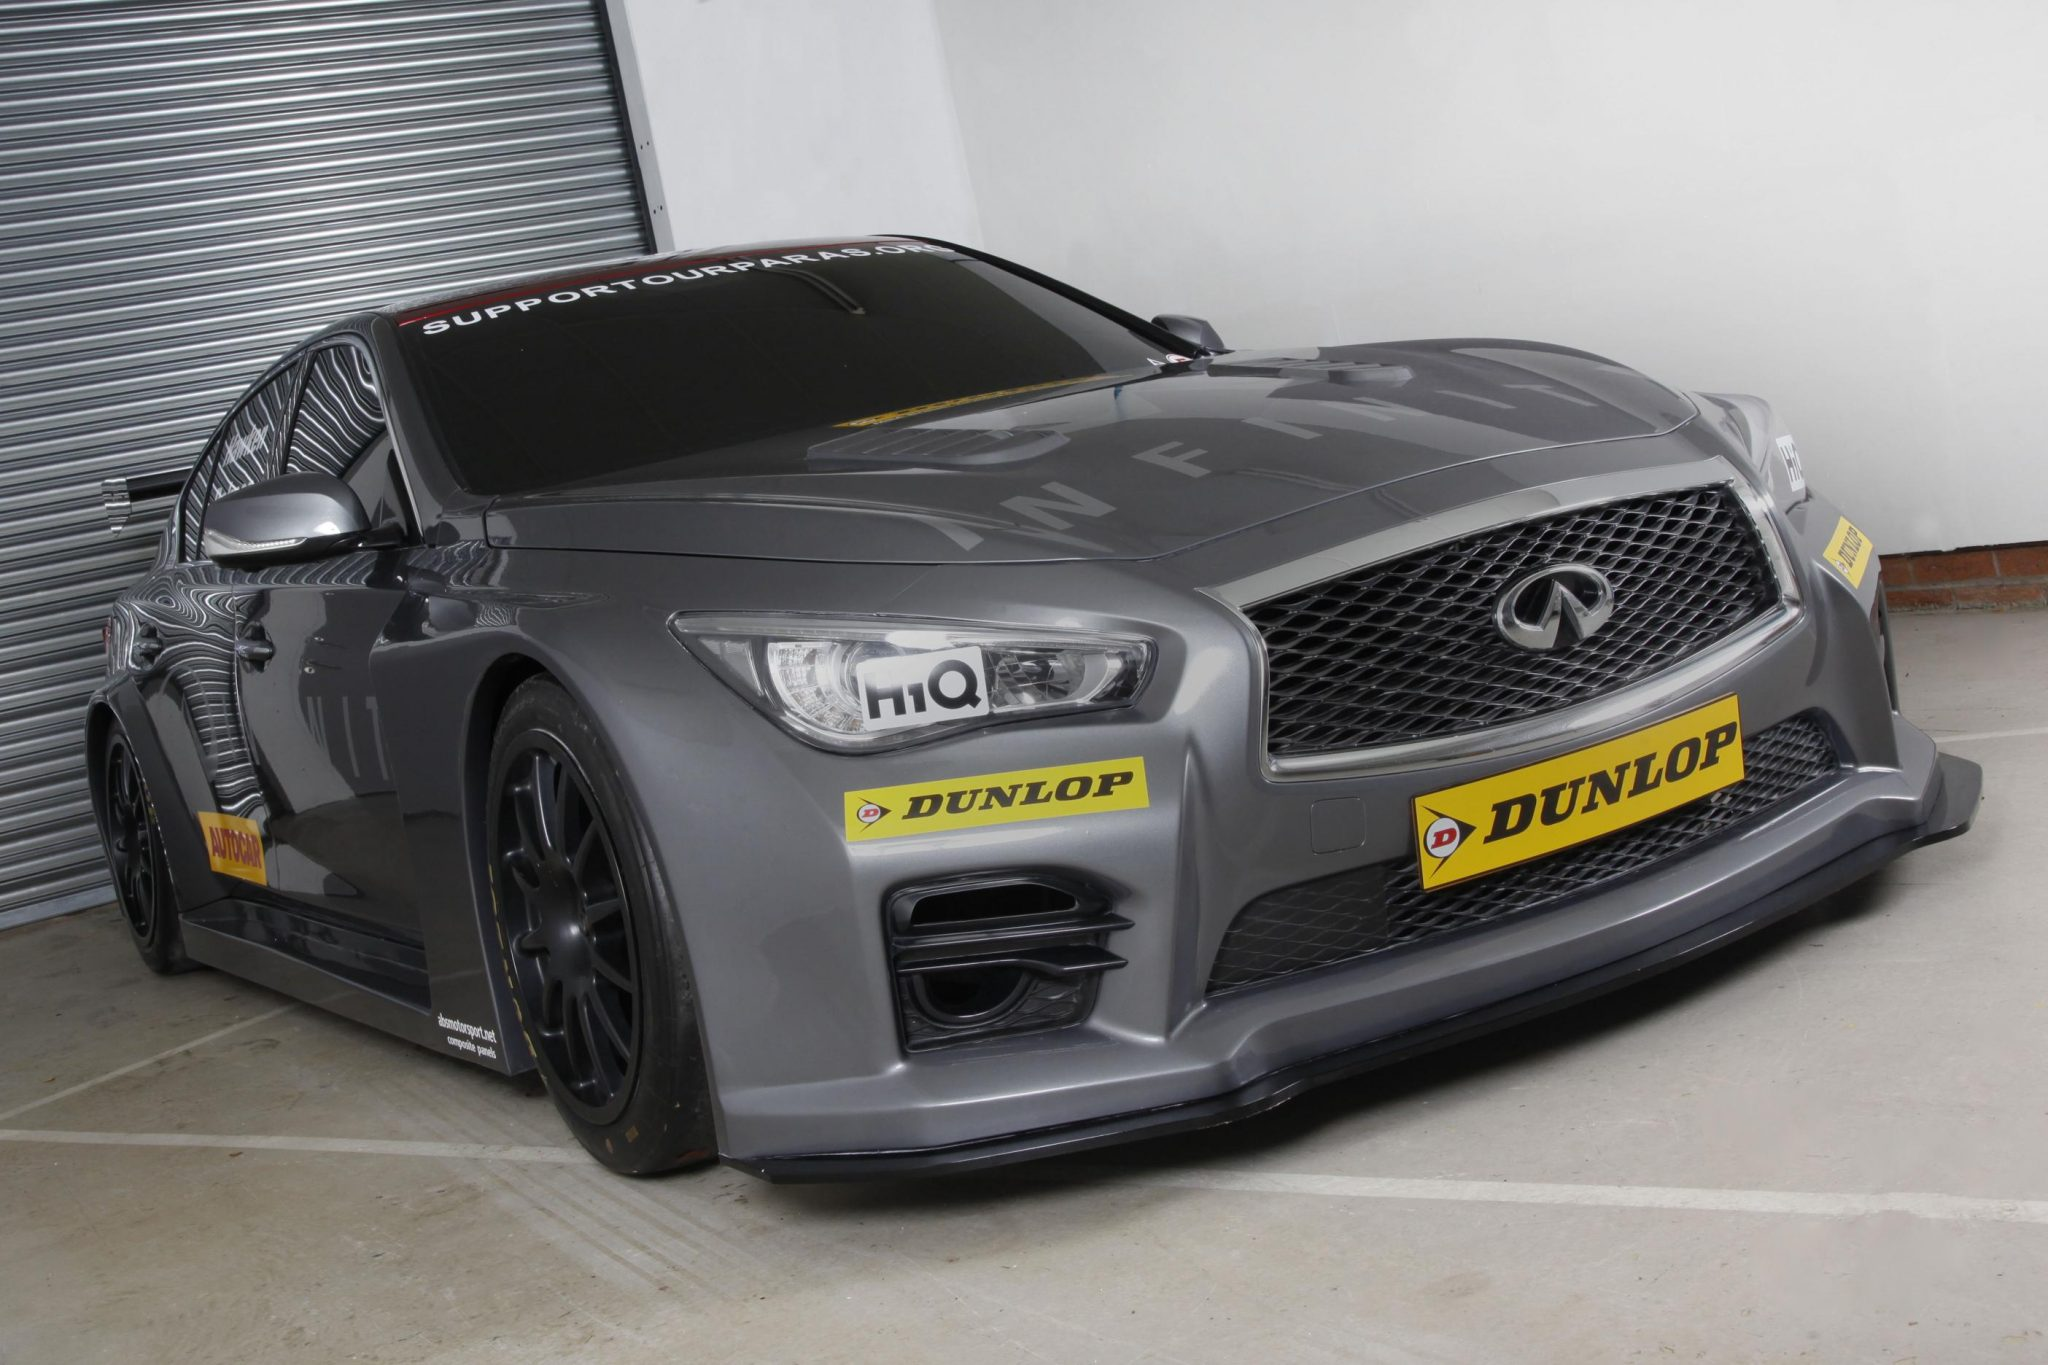 Infiniti Q50 To Race In 2015 British Touring Car Championship Forcegt Com